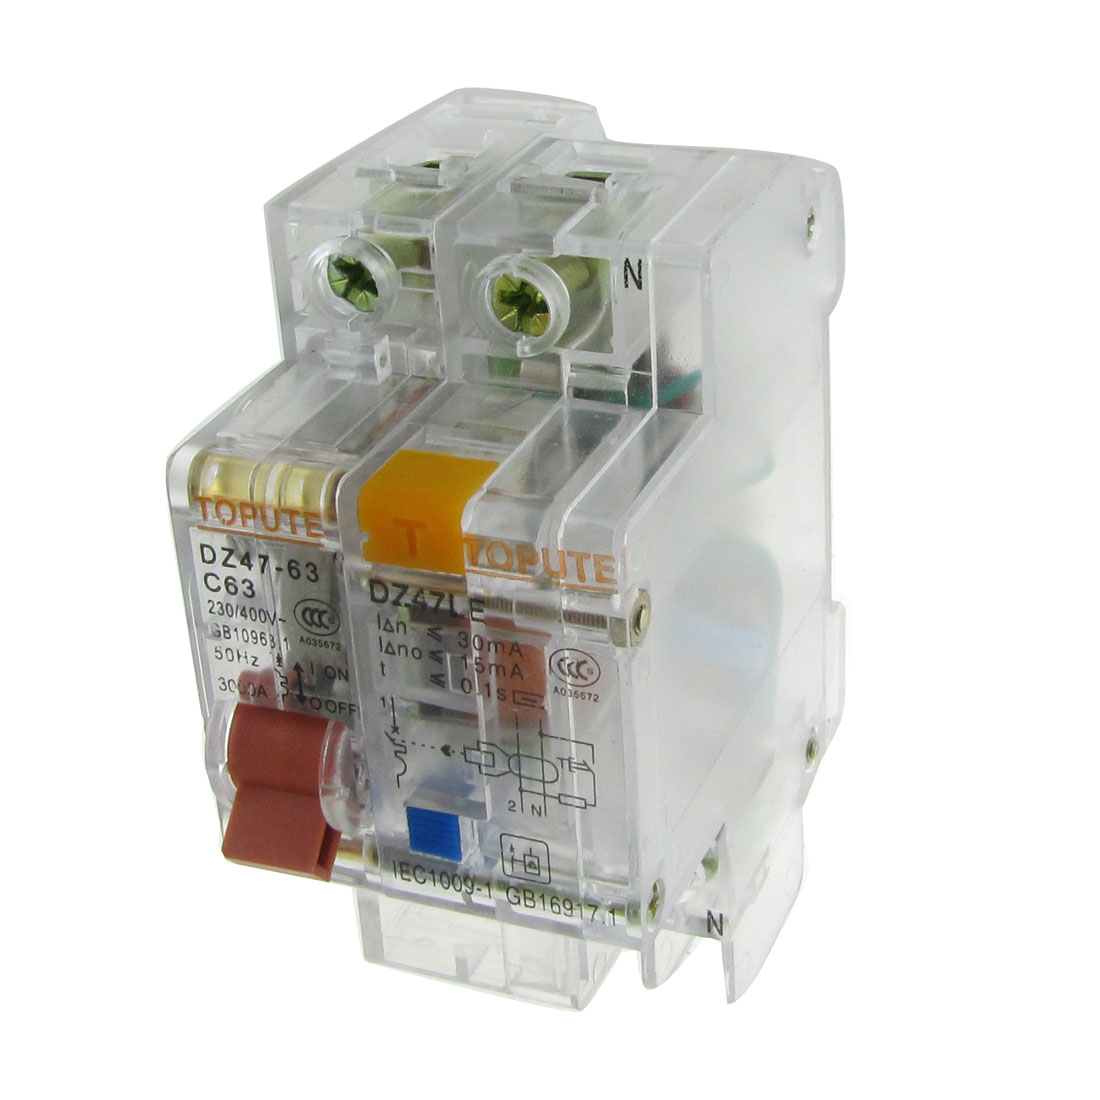 Transparent-AC-230V-400V-63A-1P-N-Earth-Leakage-Circuit-Breaker